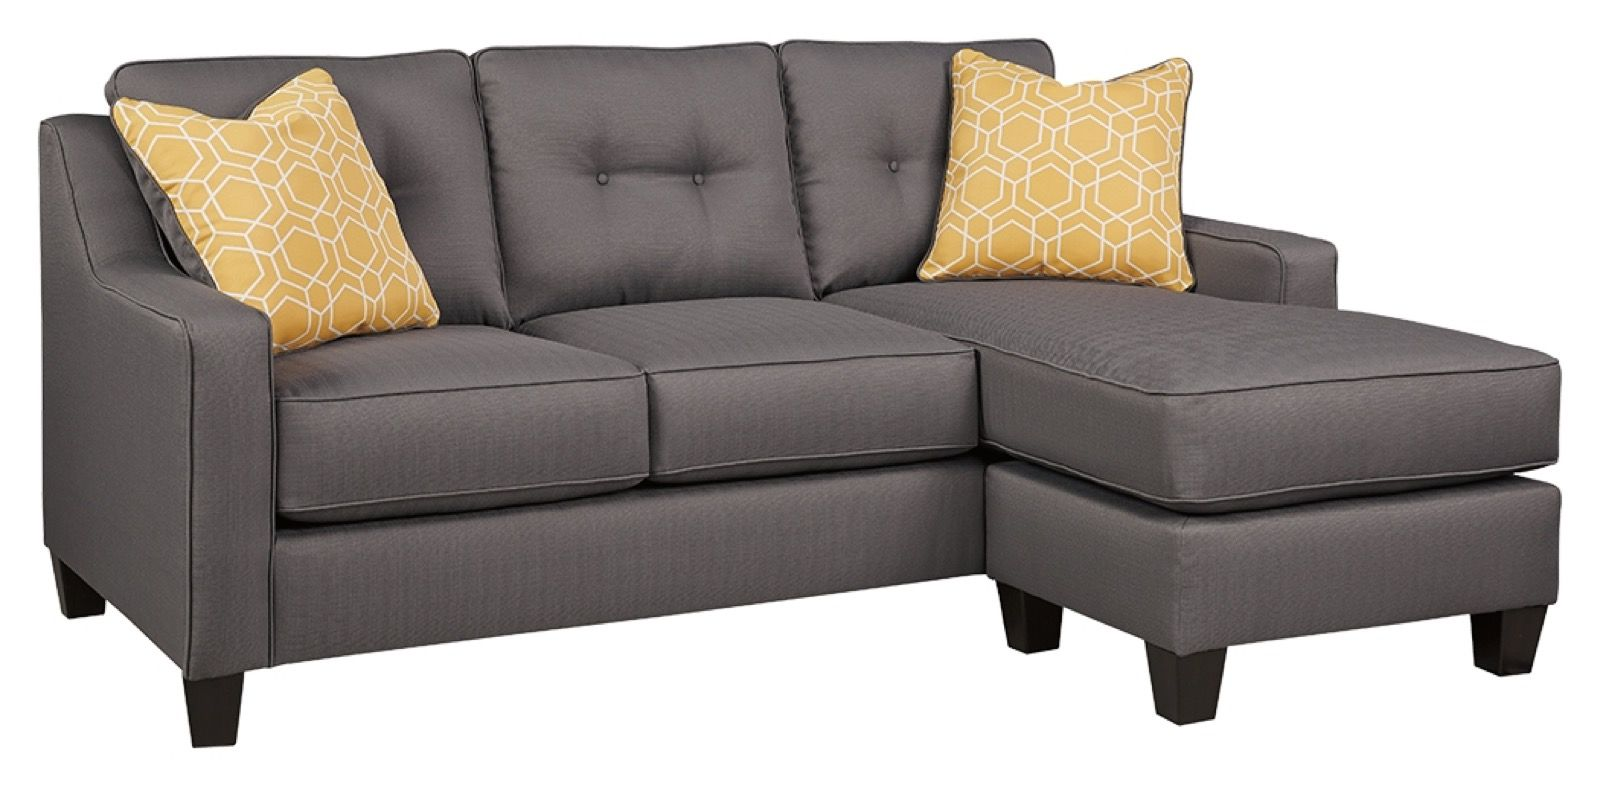 Sensational Benchcraft Aldie Nuvella Gray Queen Sofa Chaise Sleeper Home Interior And Landscaping Ologienasavecom